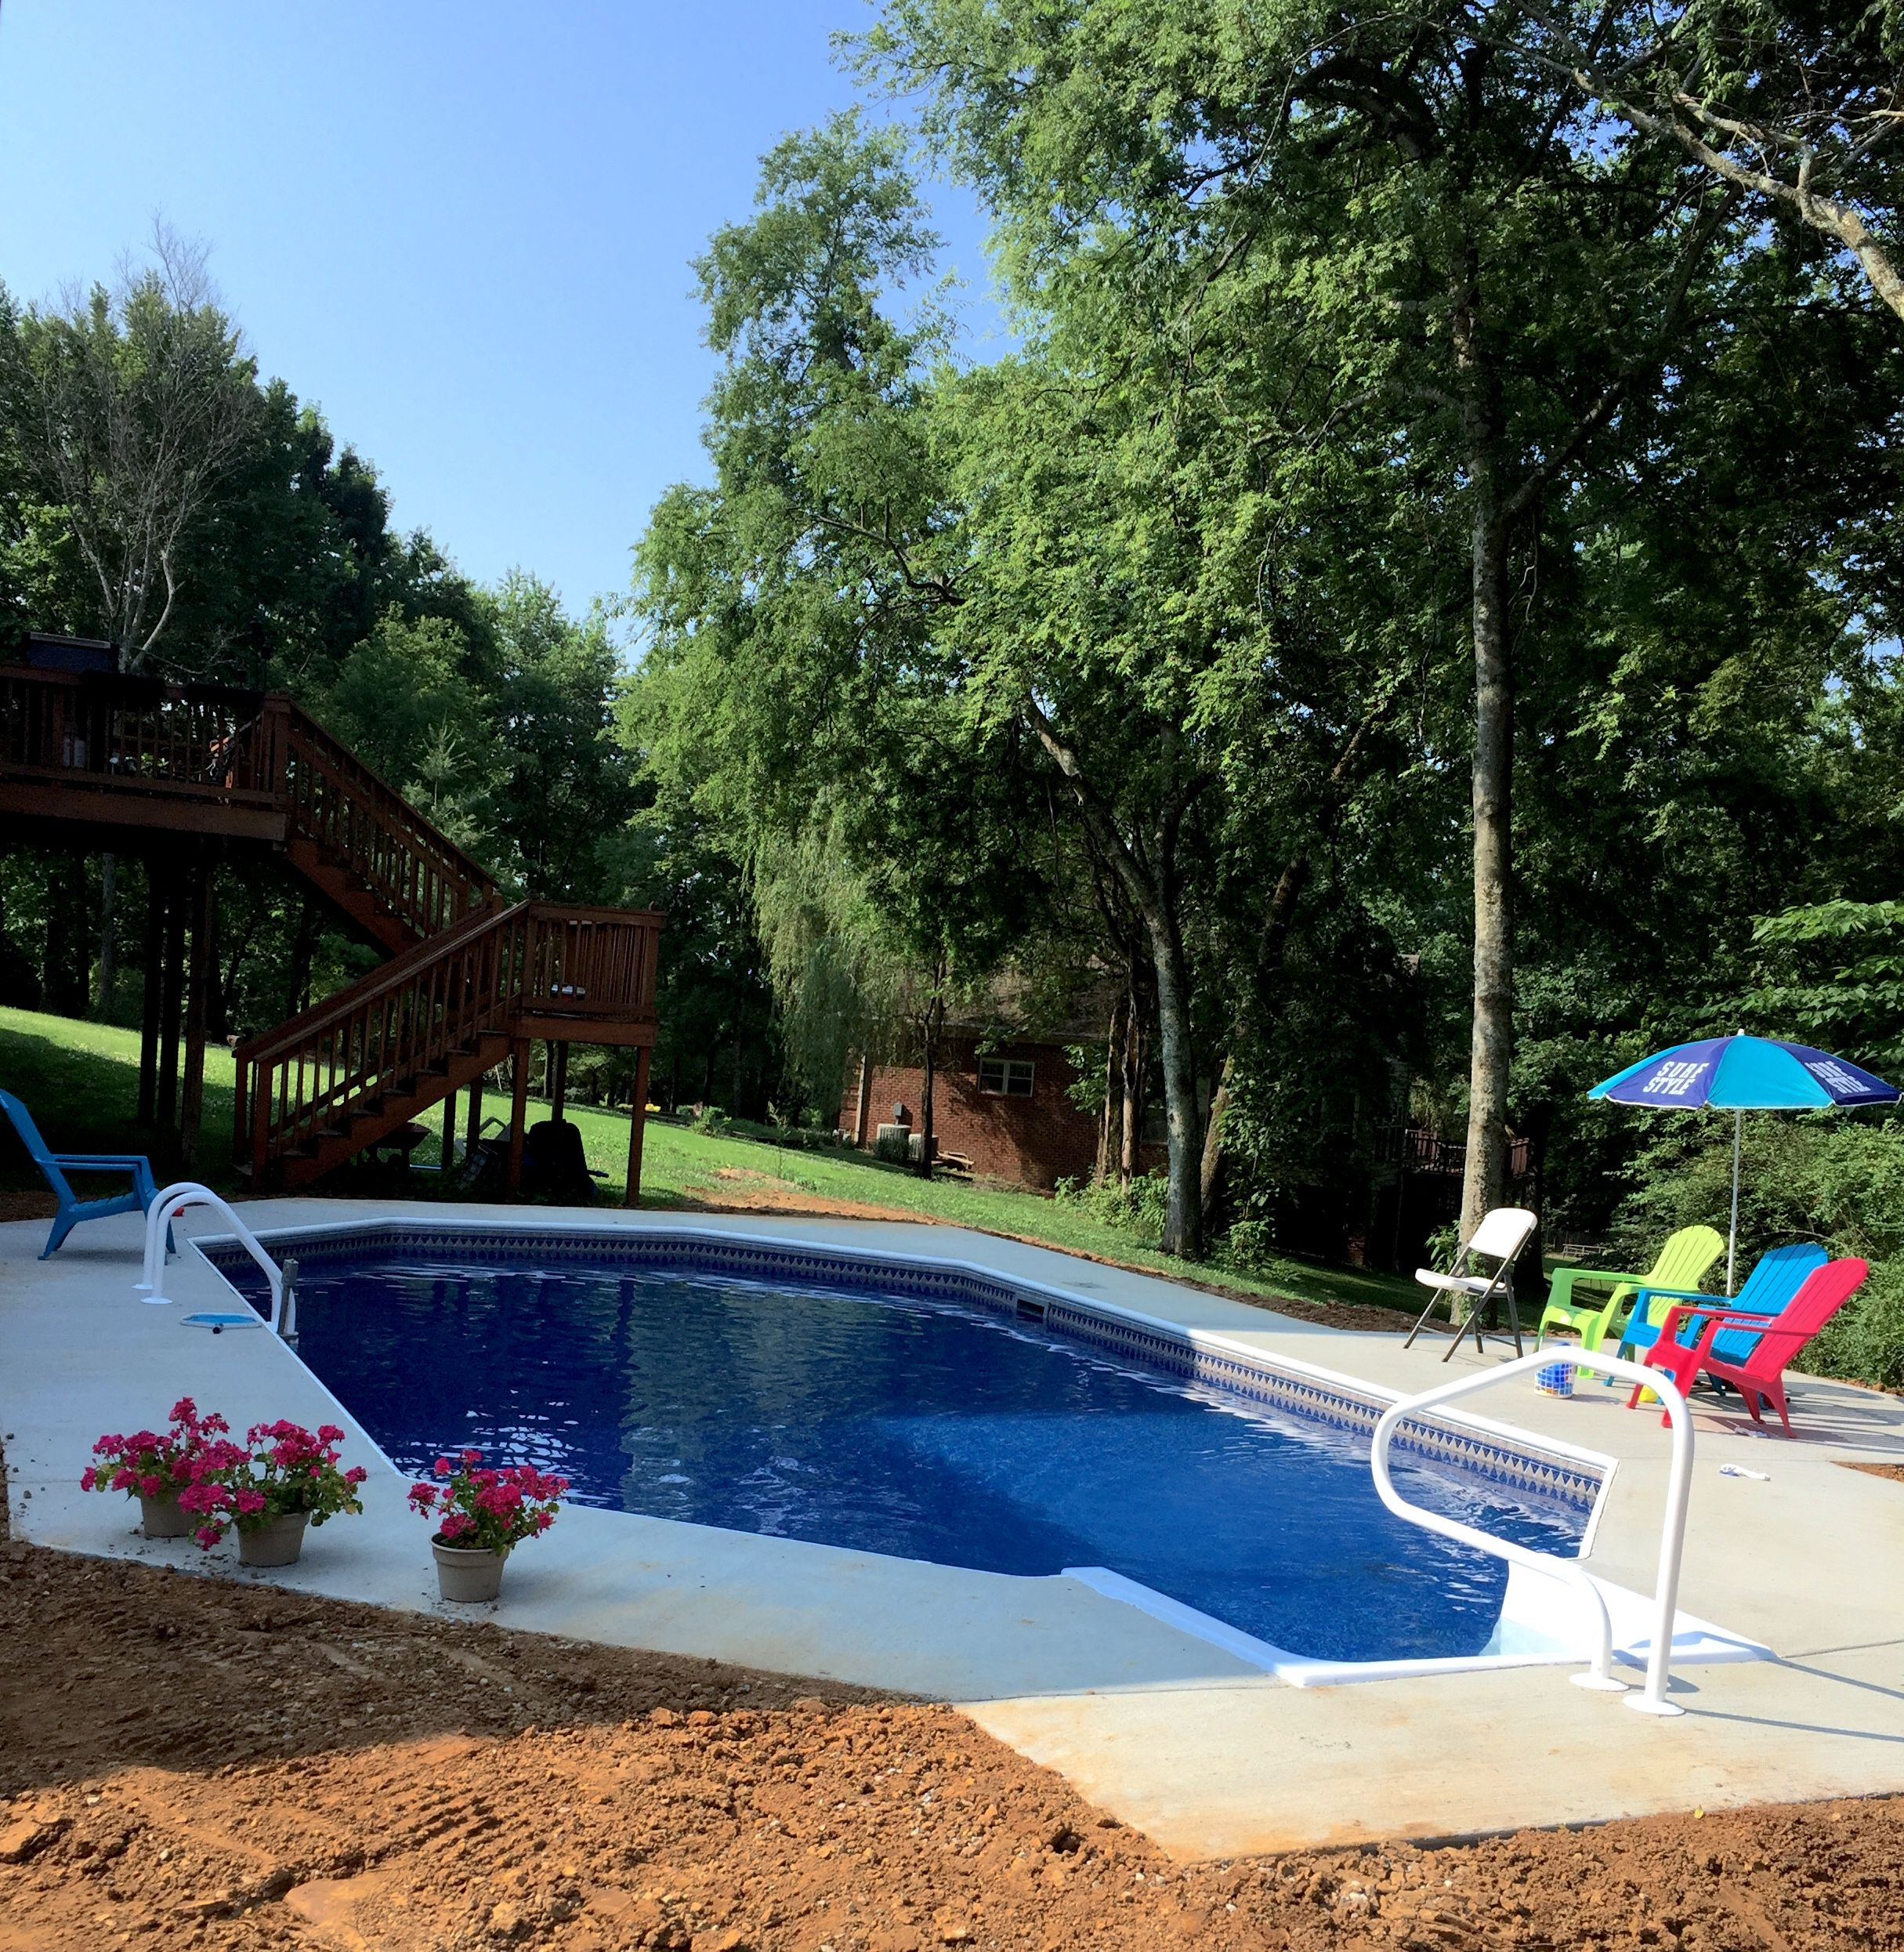 Pool And Spa Depot 17 X 31 Steel Wall Grecian Pool Blue Hampton Liner Pattern Bull Nose Coping Broom Finished Concrete Decking W Spa Pool Pool Simple Pool